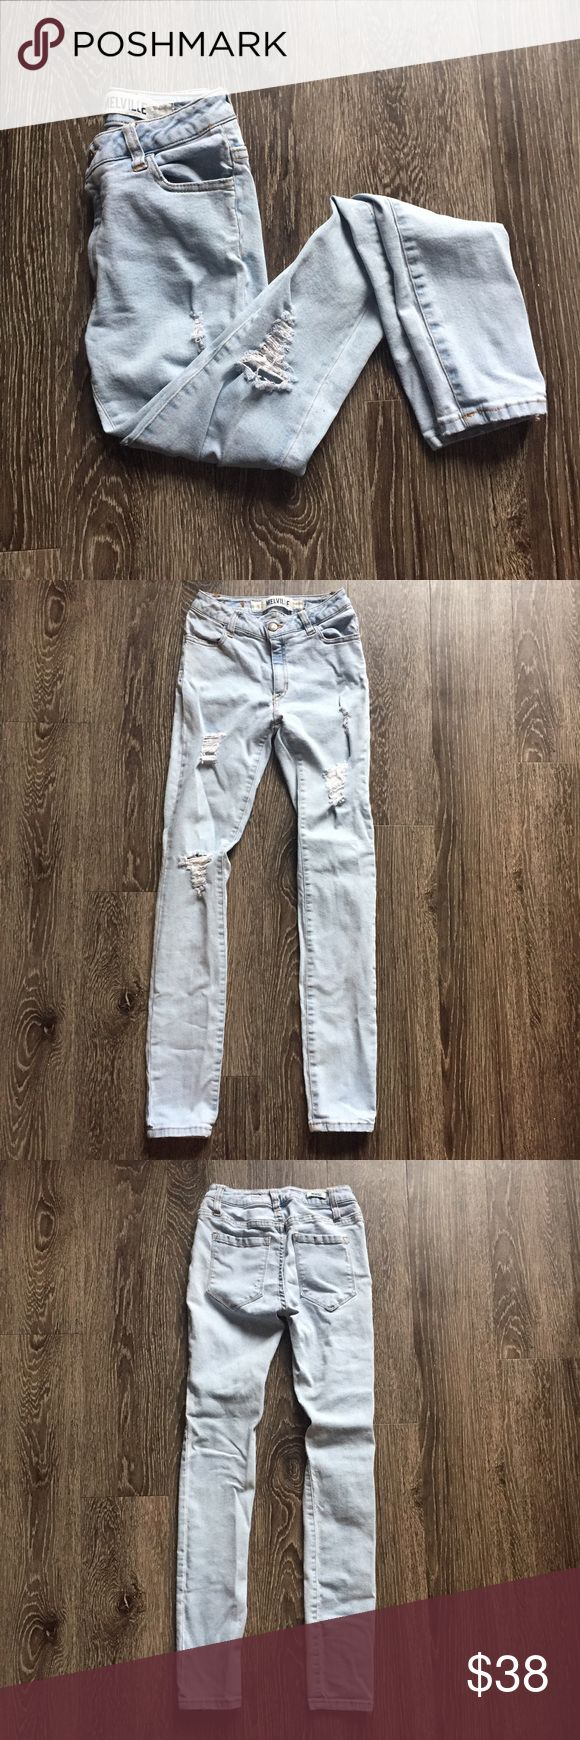 Brandy Melville light wash distressed skinny jean Like new condition. Light wash skinny jeans with distressing on the front. European size 38=US size 0-2. I would say these fit closer to a 0. Open to offers Brandy Melville Jeans Skinny